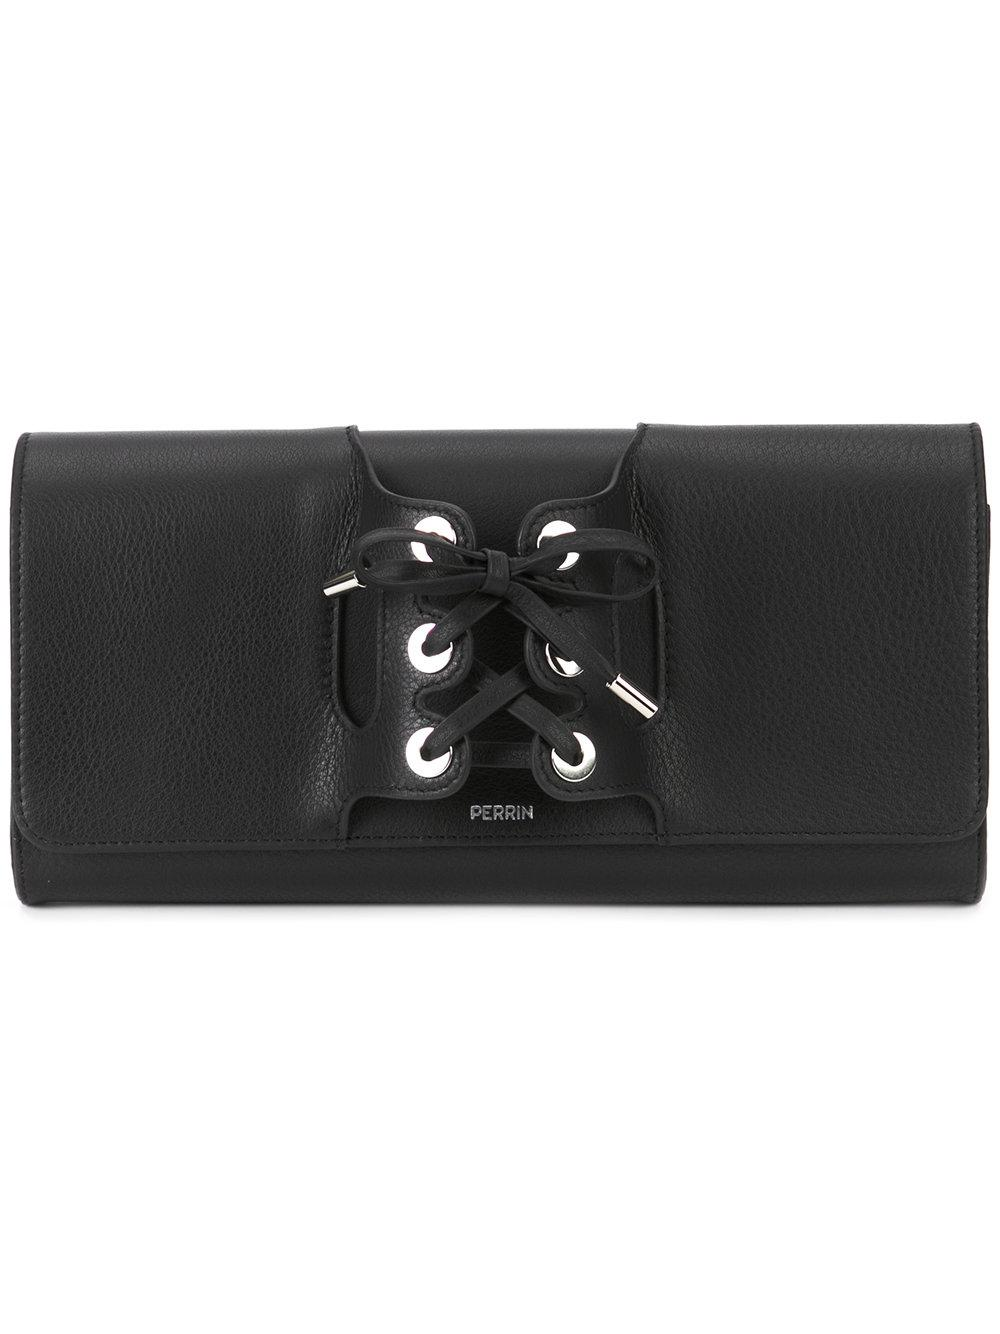 Le Corset Lace Up Clutch Bag